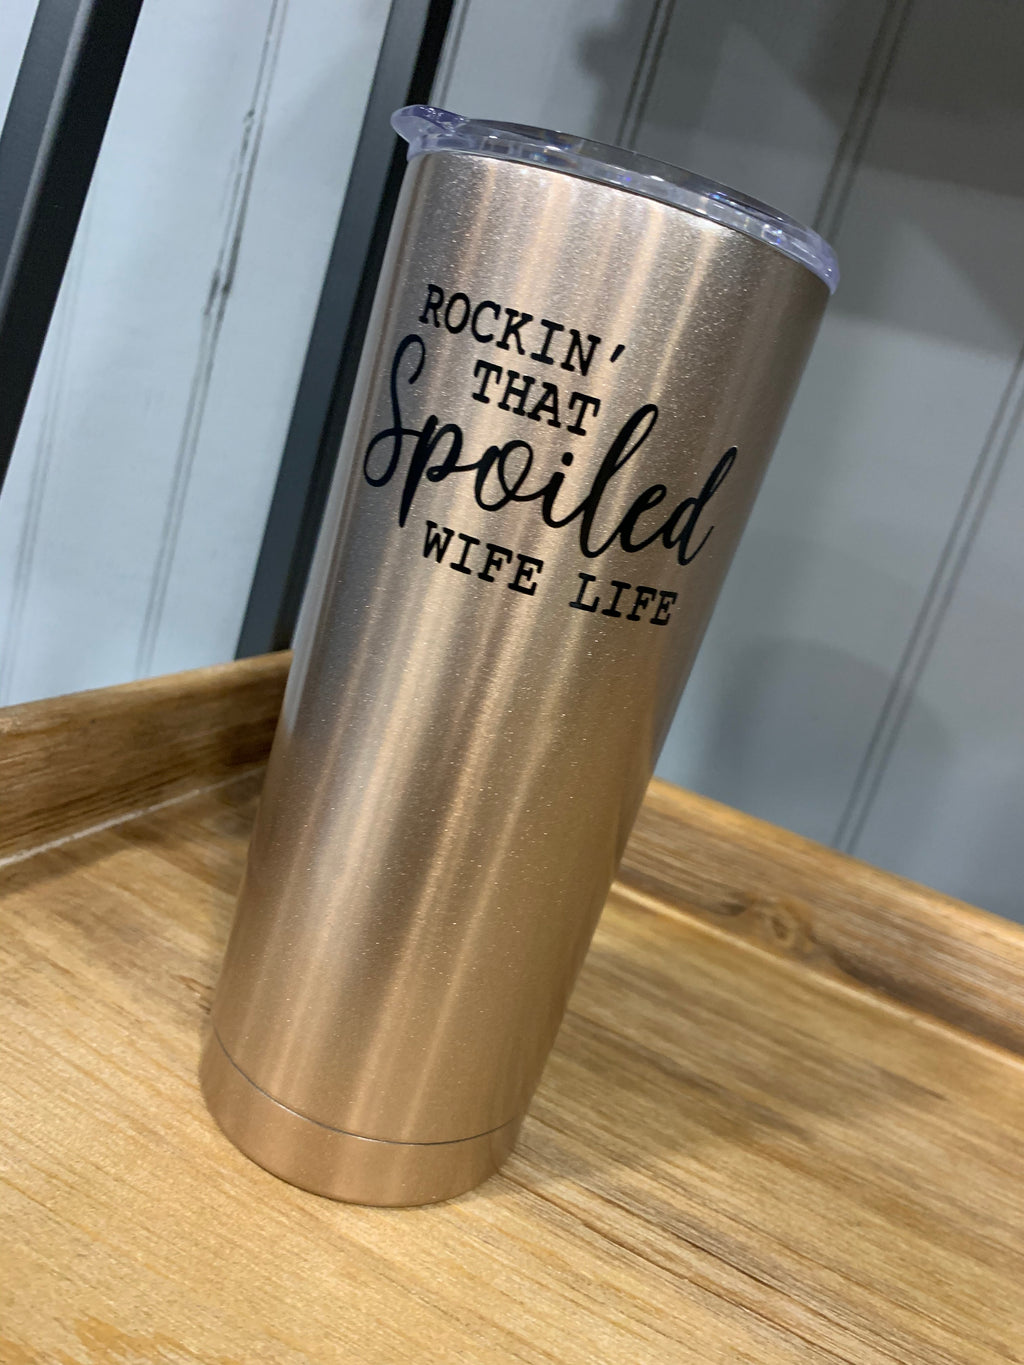 Rockin' That Spoiled Wife Life Tumbler Travel Coffee Mug